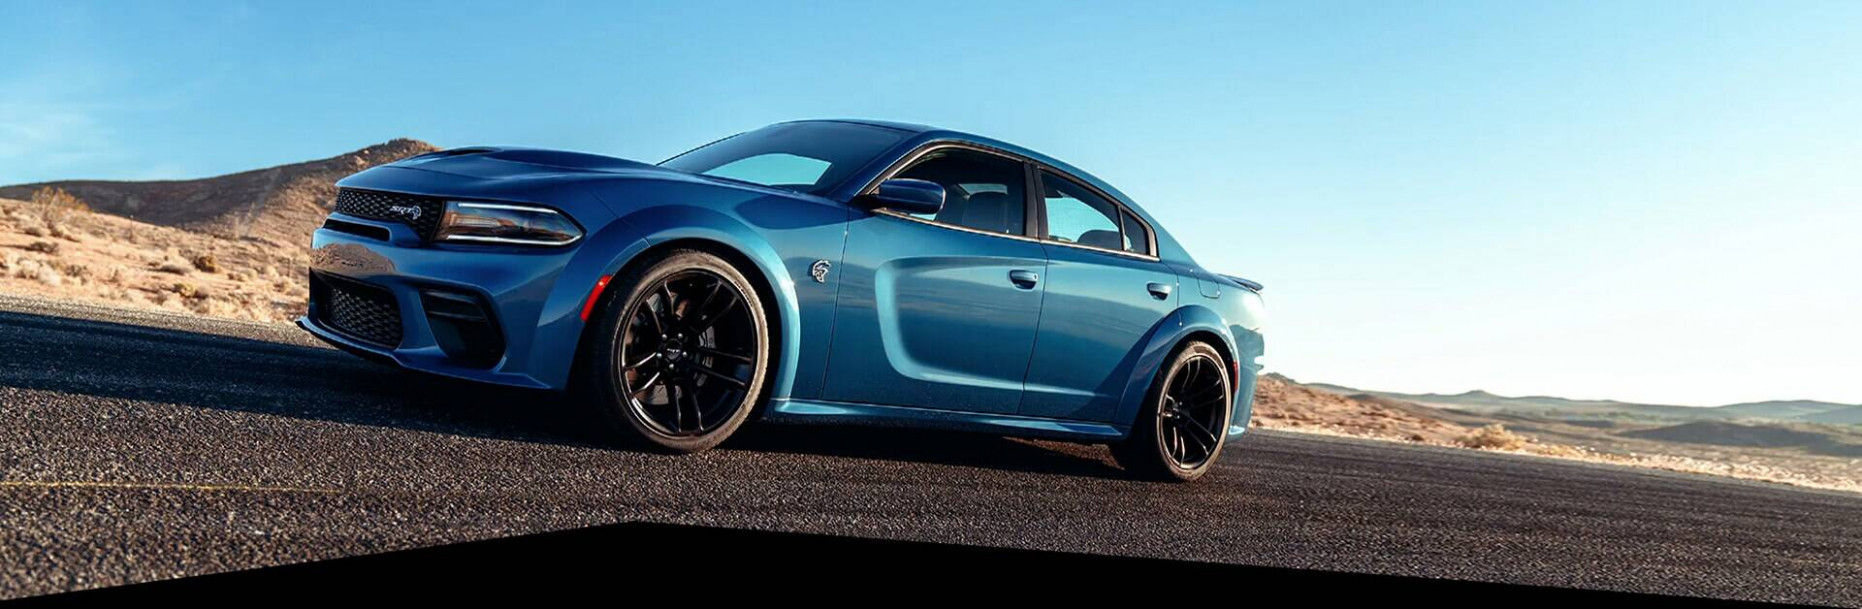 8 Dodge Charger SRT® Hellcat Widebody | Configurations